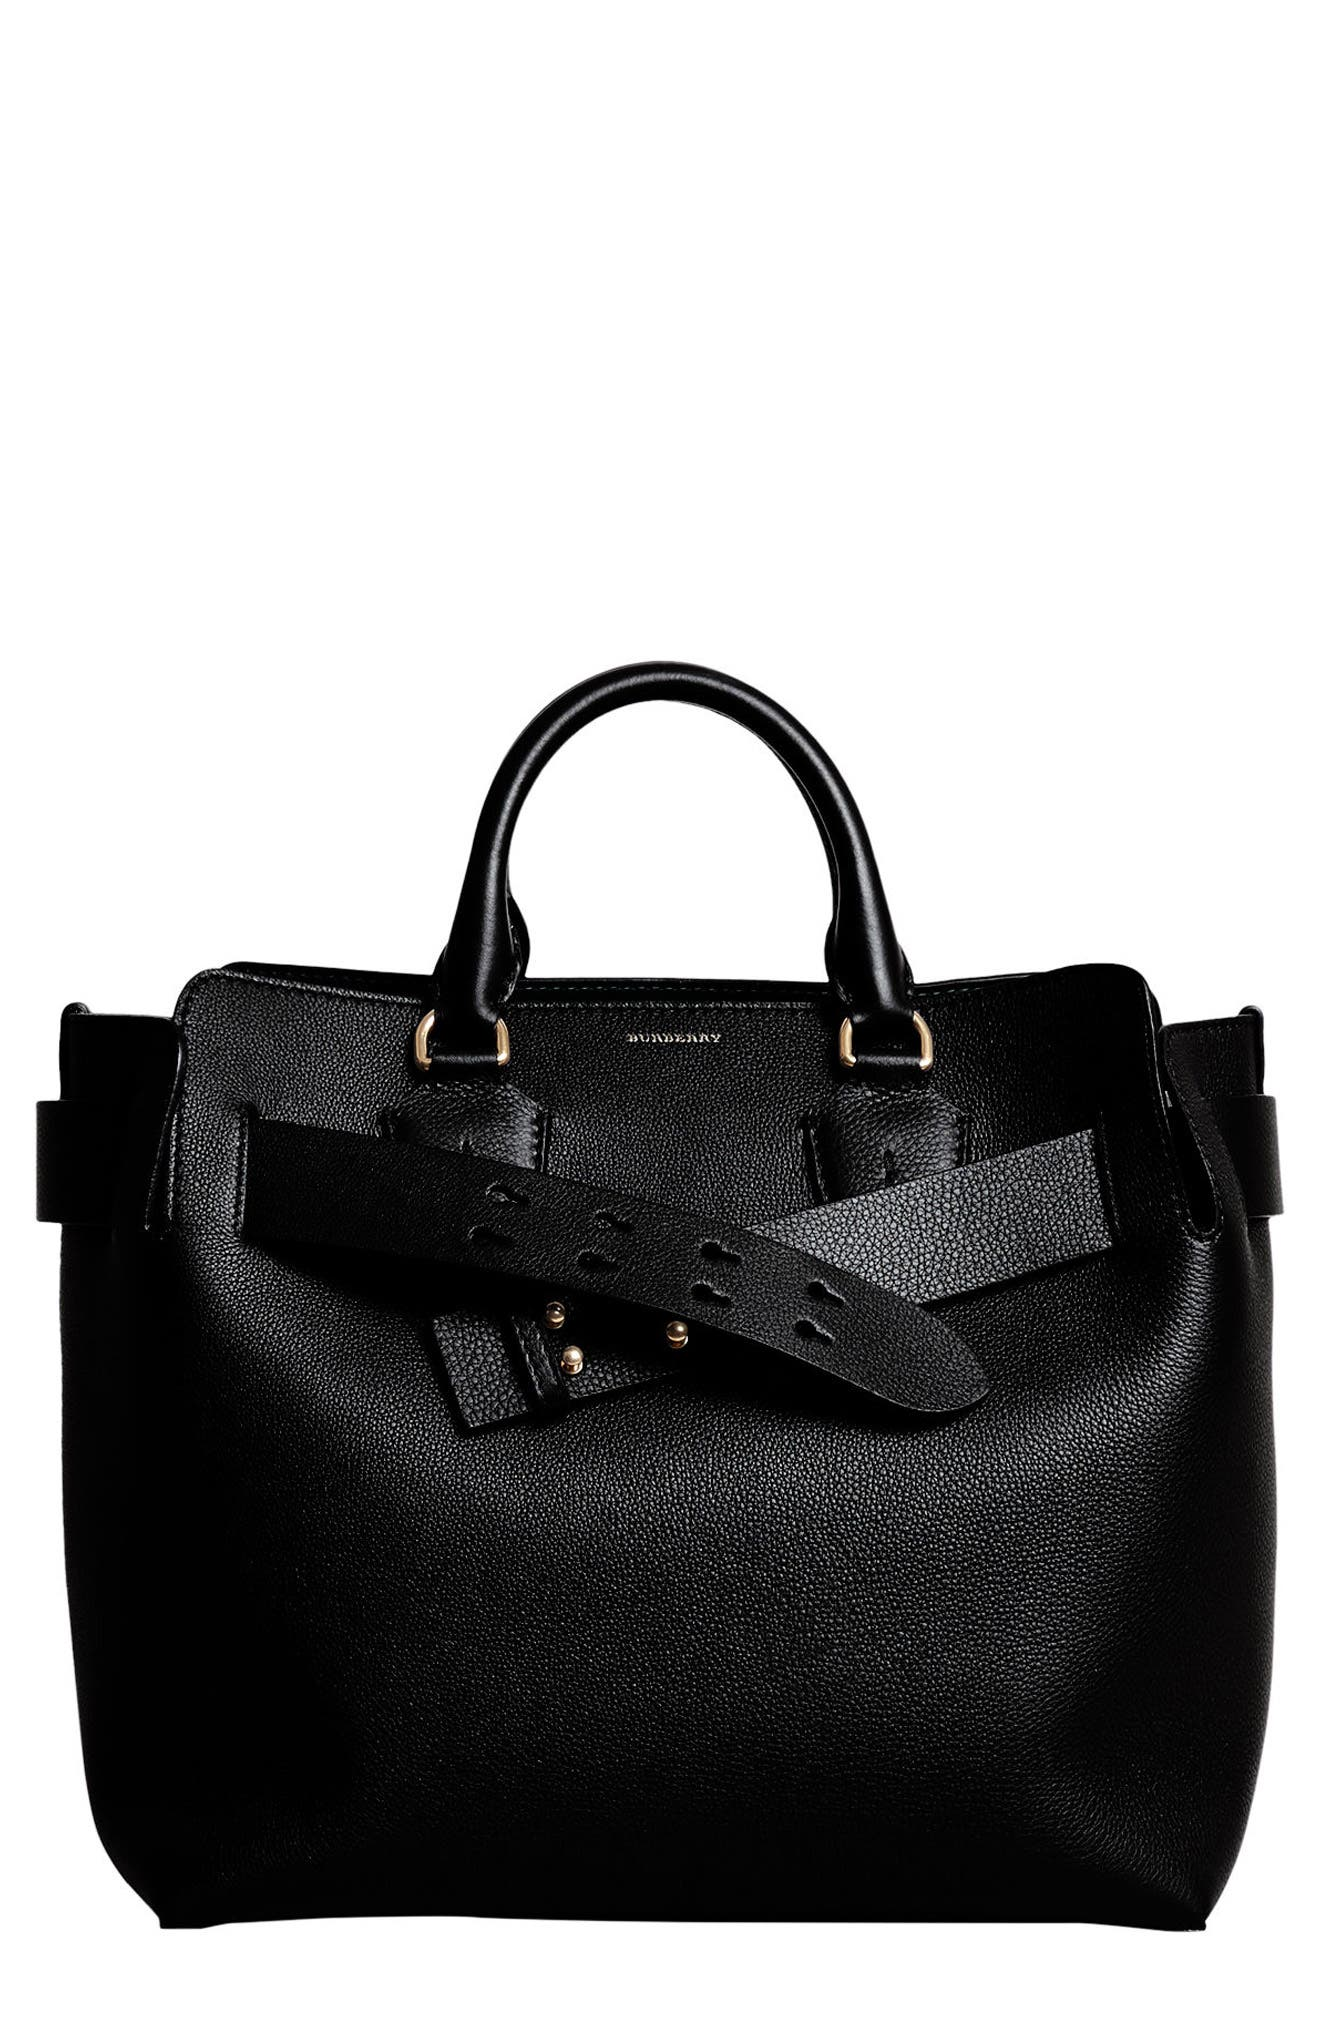 Medium Belt Bag Leather Tote,                         Main,                         color, Black